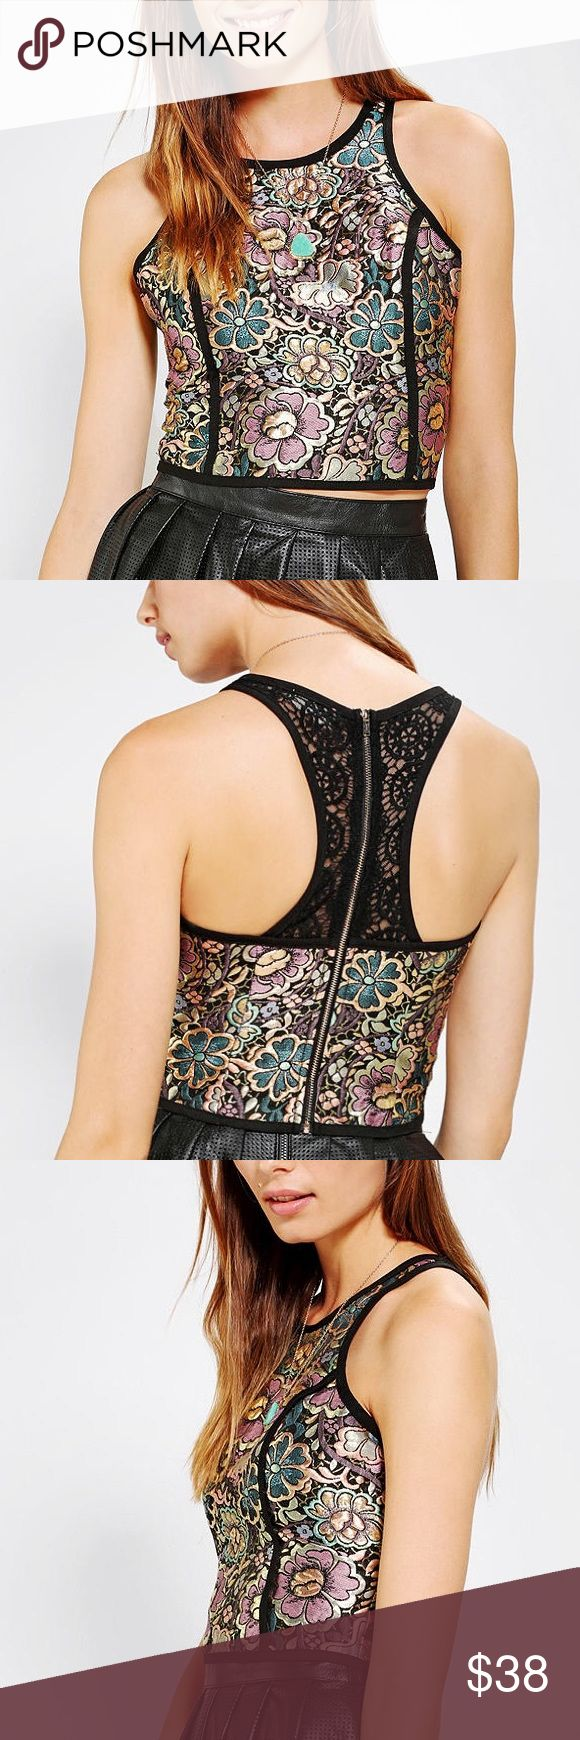 UO Cropped Jacquard Lane Back Tank Urban Outfitters Coincidence & Chance Metallic Cropped Jacquard Tank. Features metallic Floral print of gold, purple, pink, and blue flowers, lace racerback, and rear exposed zipper. First 3 photos are stock photos, 4th is of the actual garment tags. This item is NWT and shows no visible flaws. Size Large. Goes great with leather pants or skirt! Urban Outfitters Tops Crop Tops